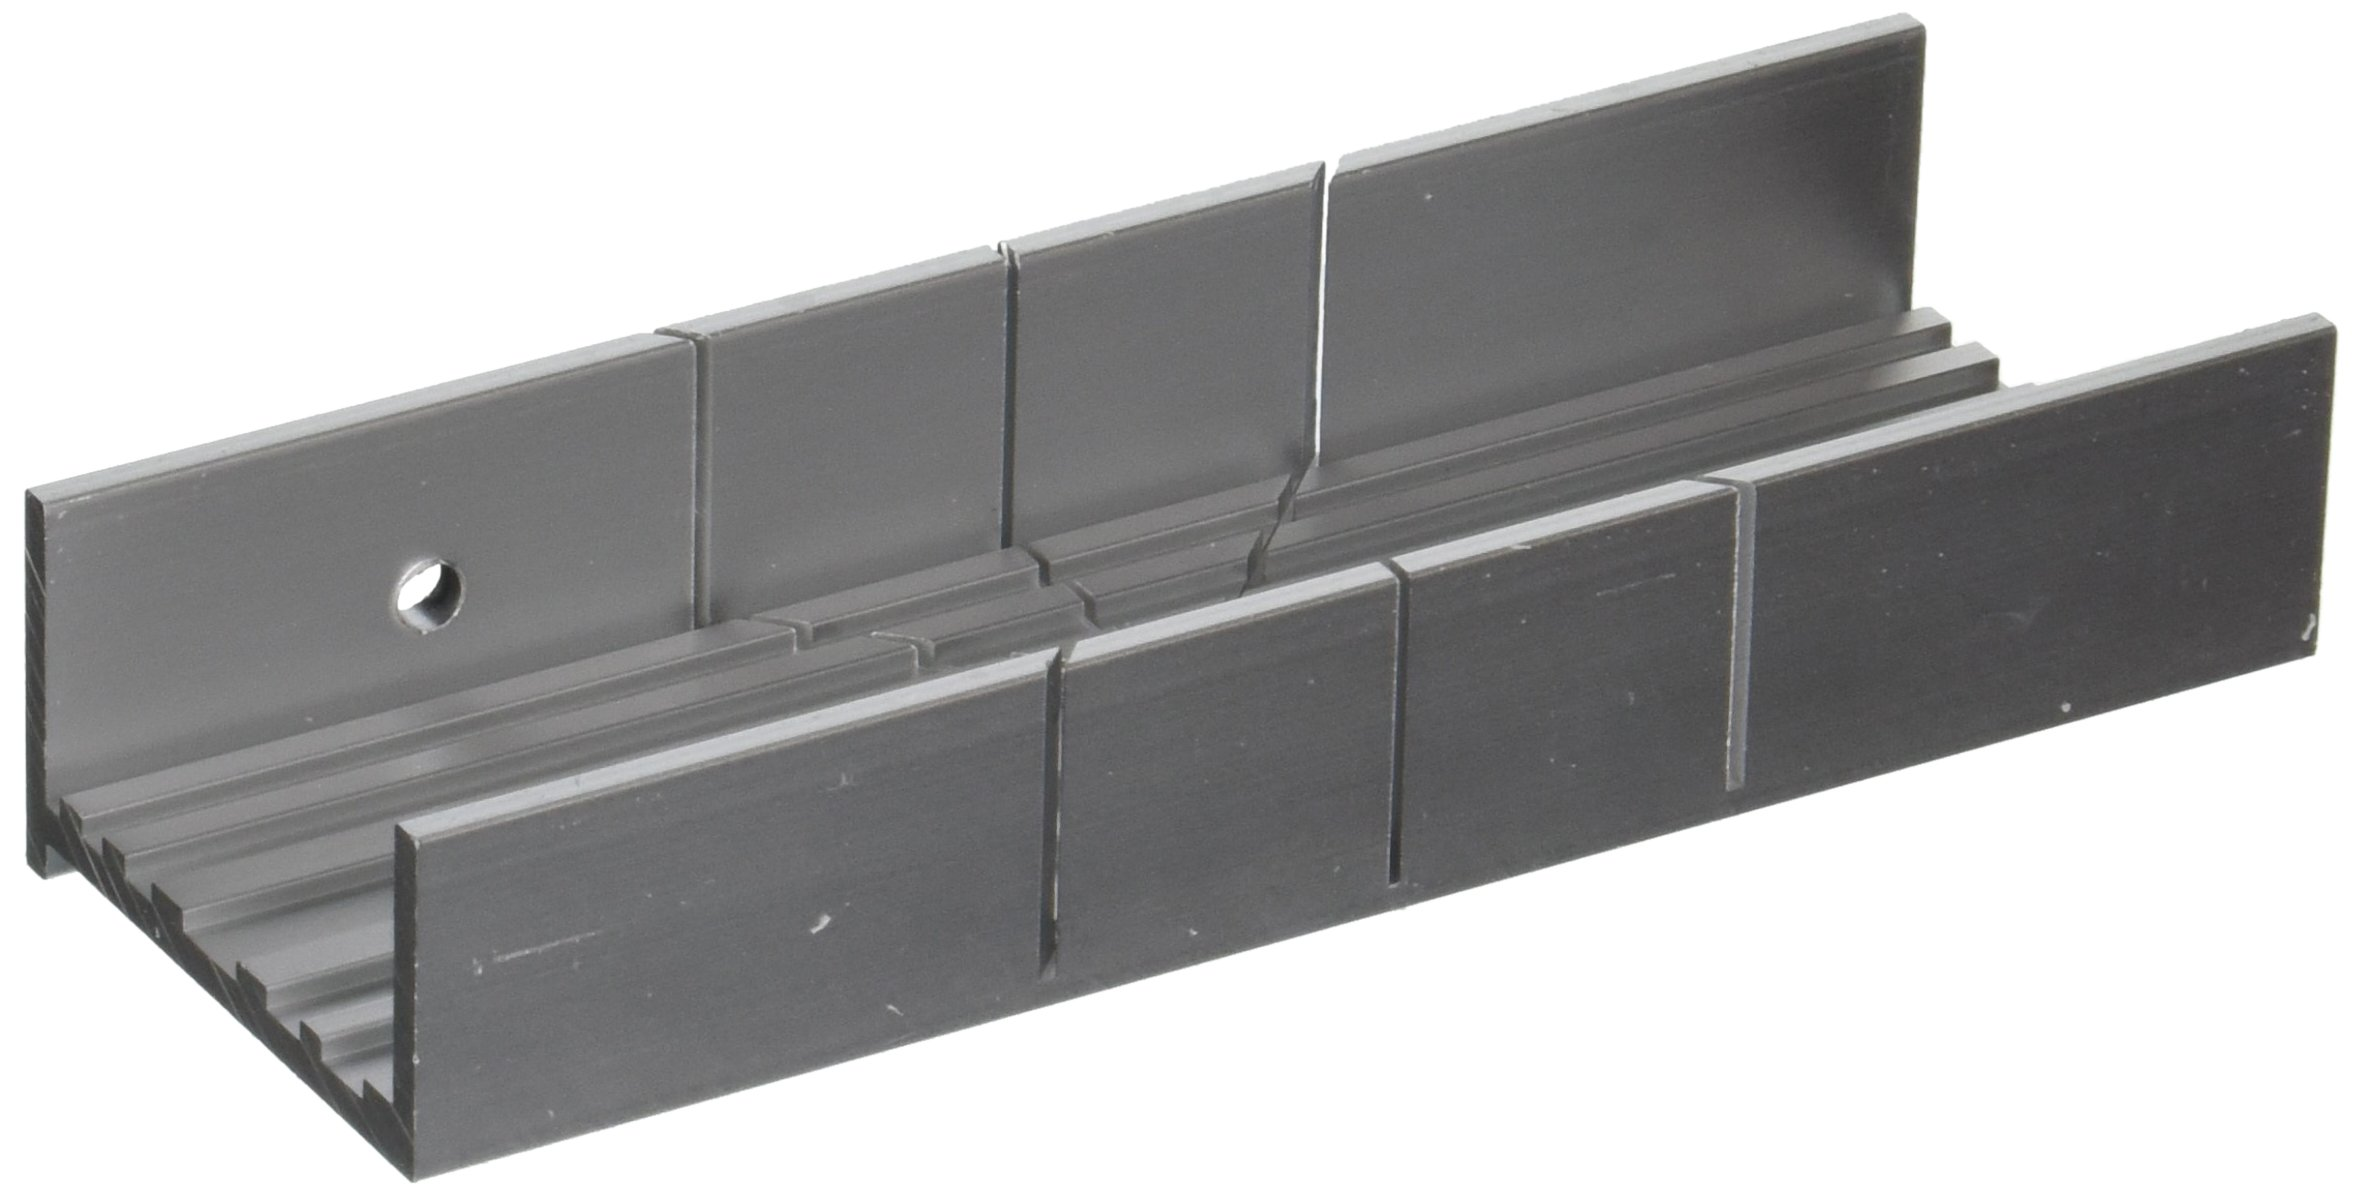 Zona 35-260 Aluminum Wide Slot Miter Box, Slot Size 031-Inch, Slot Angles 45, 90, Cutting Depth 3/4-Inch, Cutting Width 1-3/4-Inch, Length 5-1/2-Inch